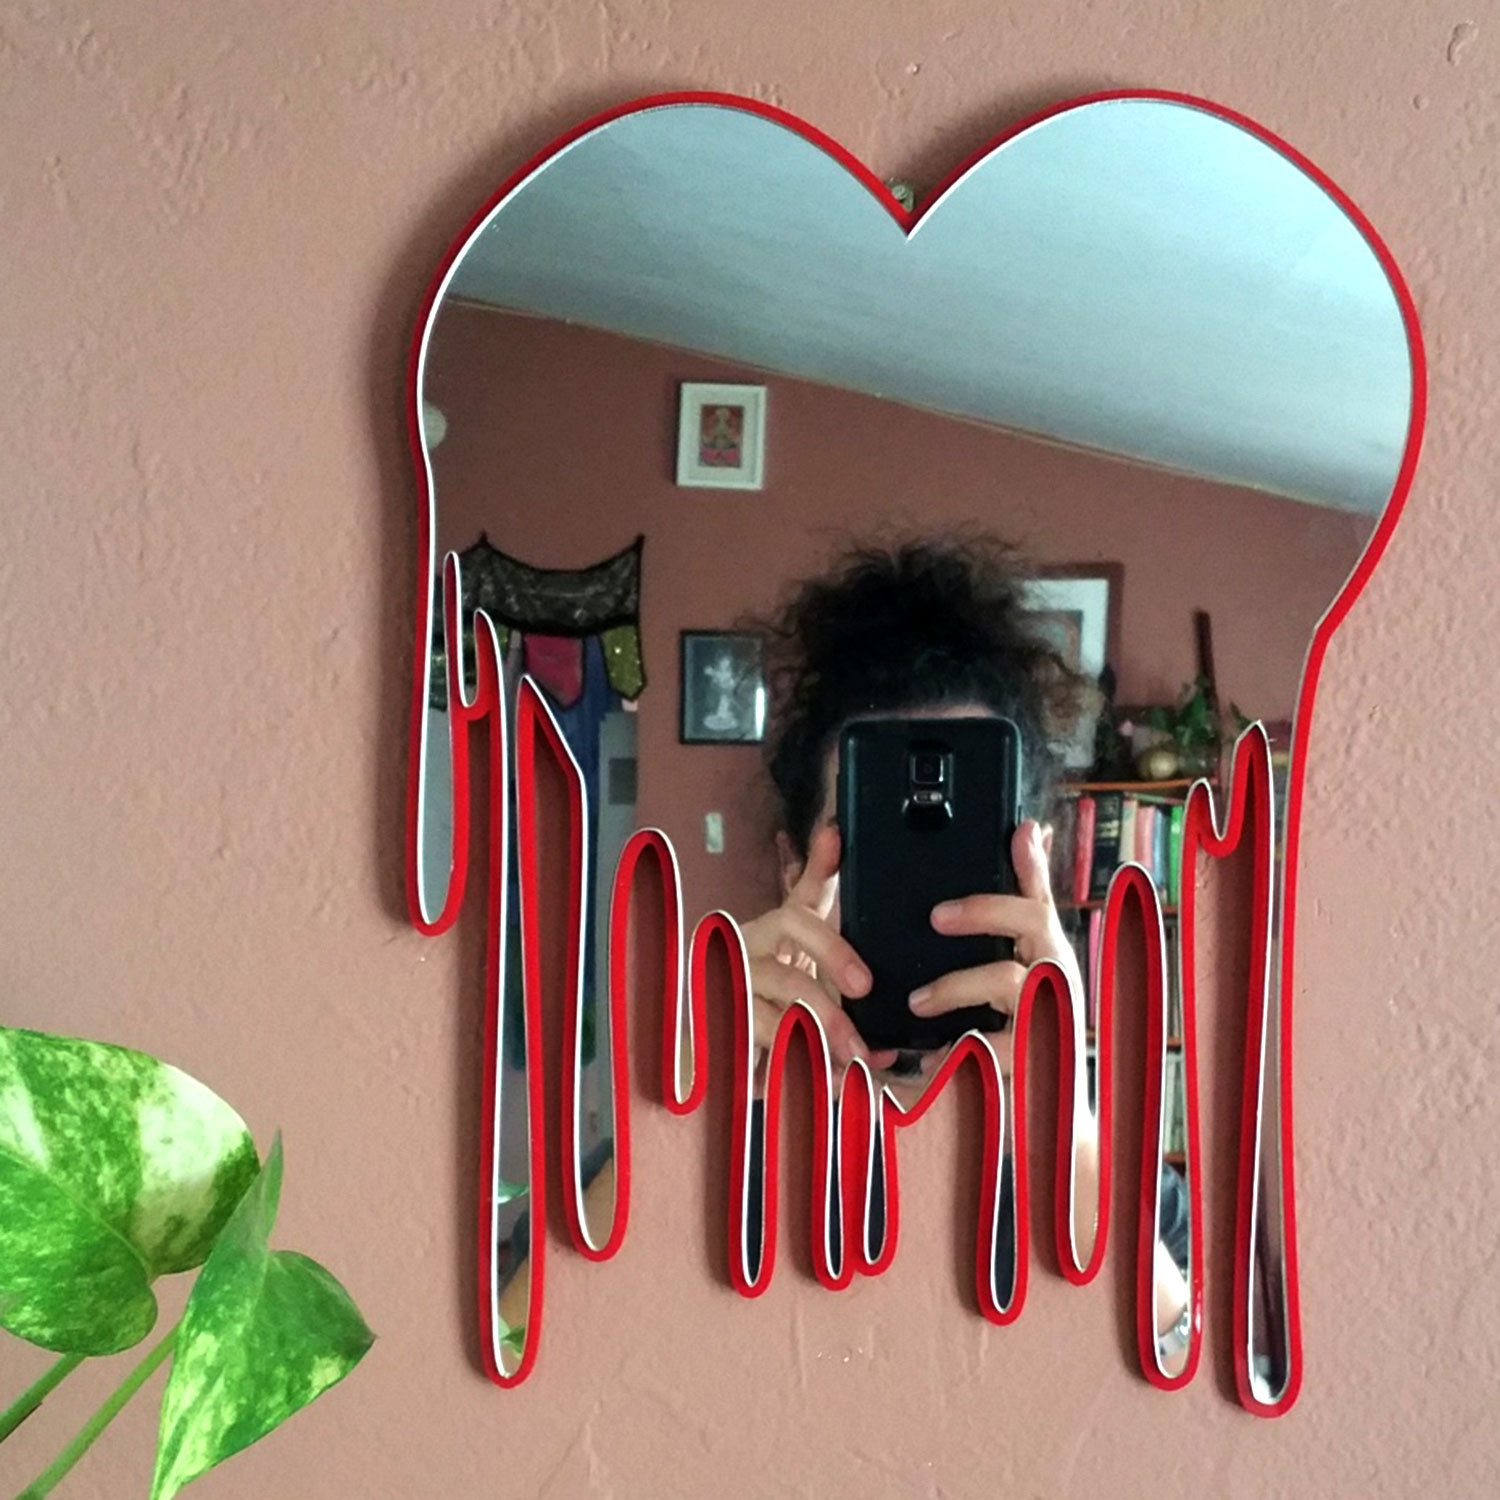 Heart Art Bleeding Heart Wall Art Heart Wall Mirror Decorative Within Red Wall Mirrors (Image 7 of 15)